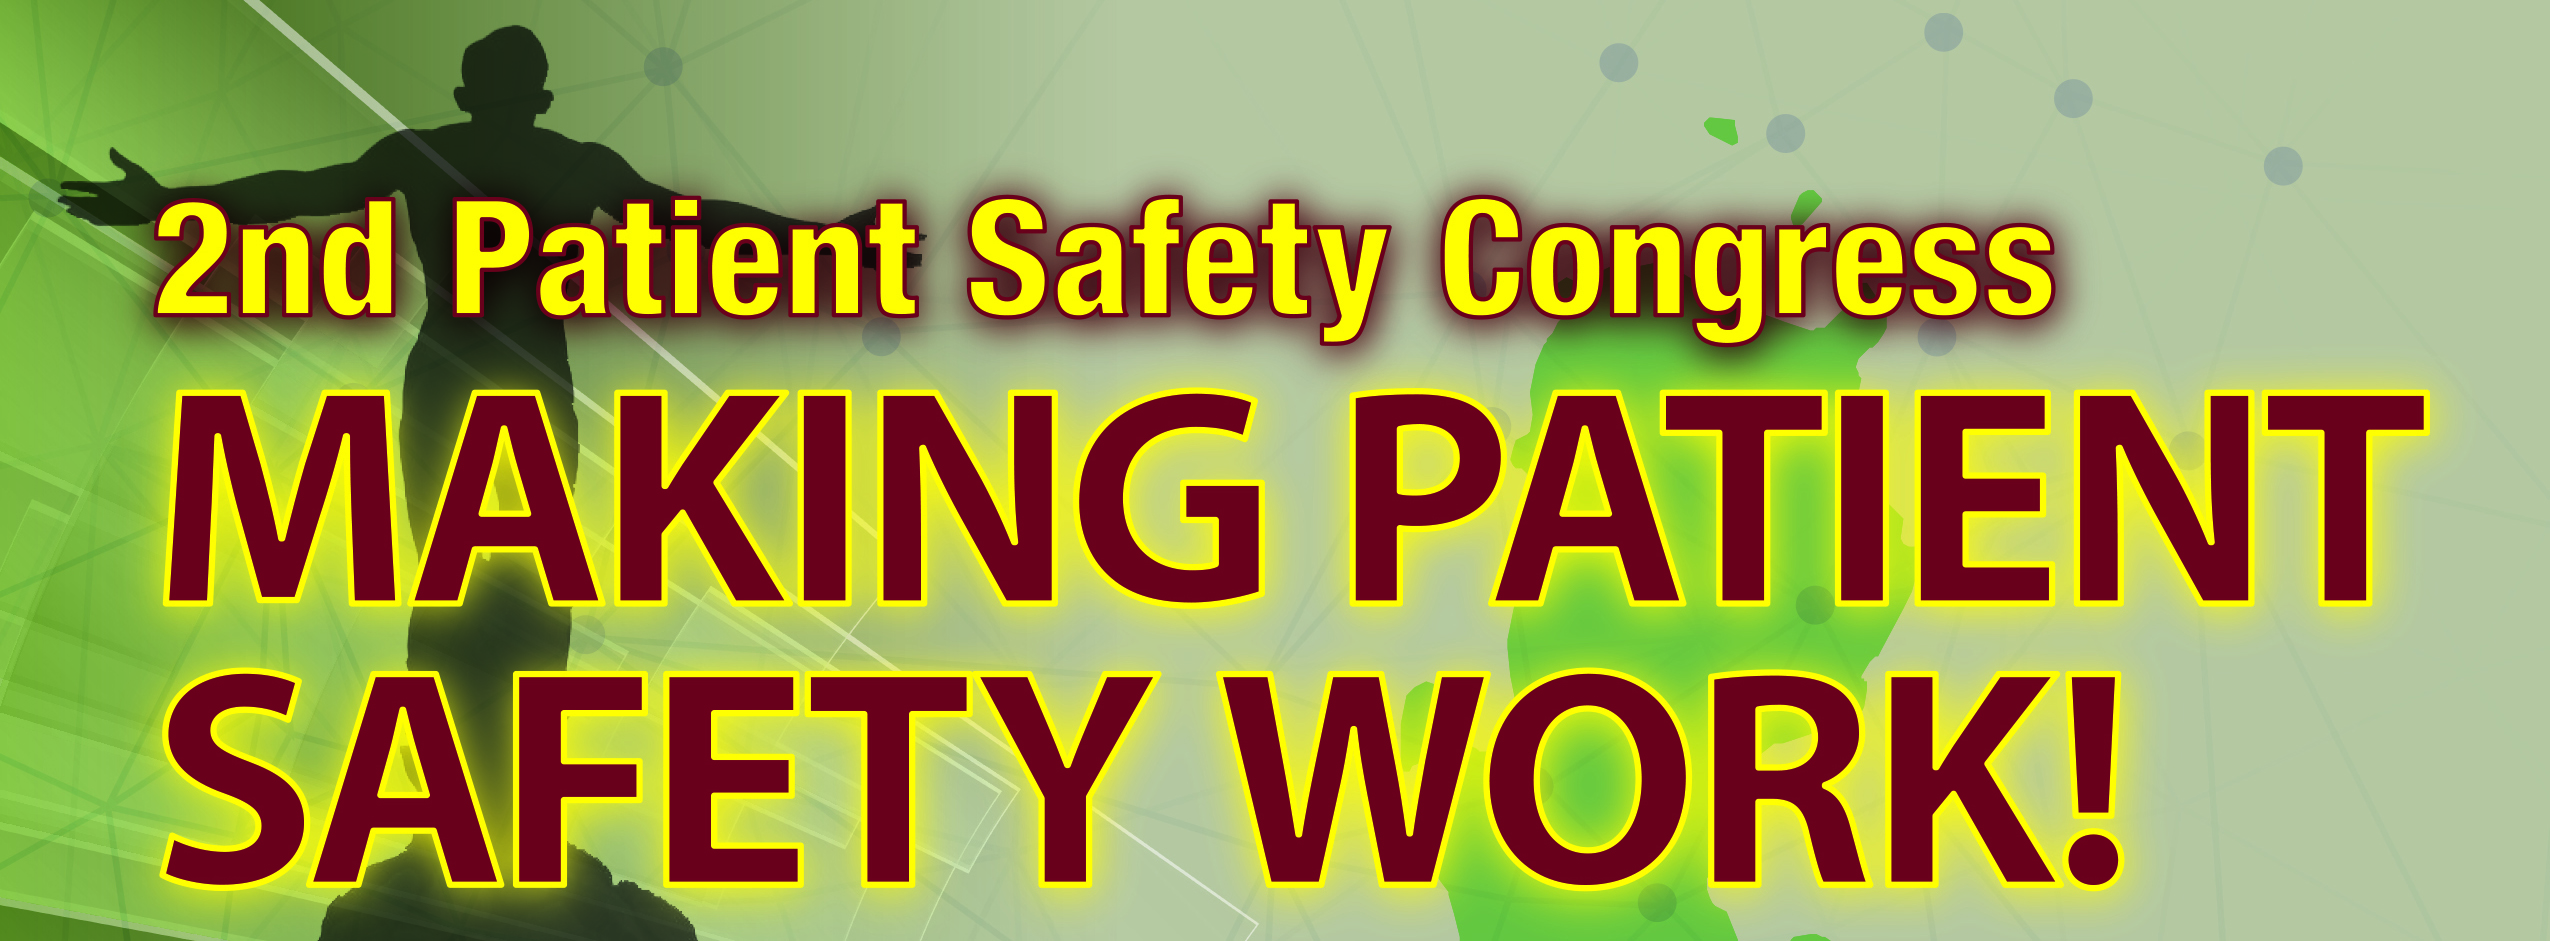 2nd Patient Safety Congress: Making Patient Safety Work!